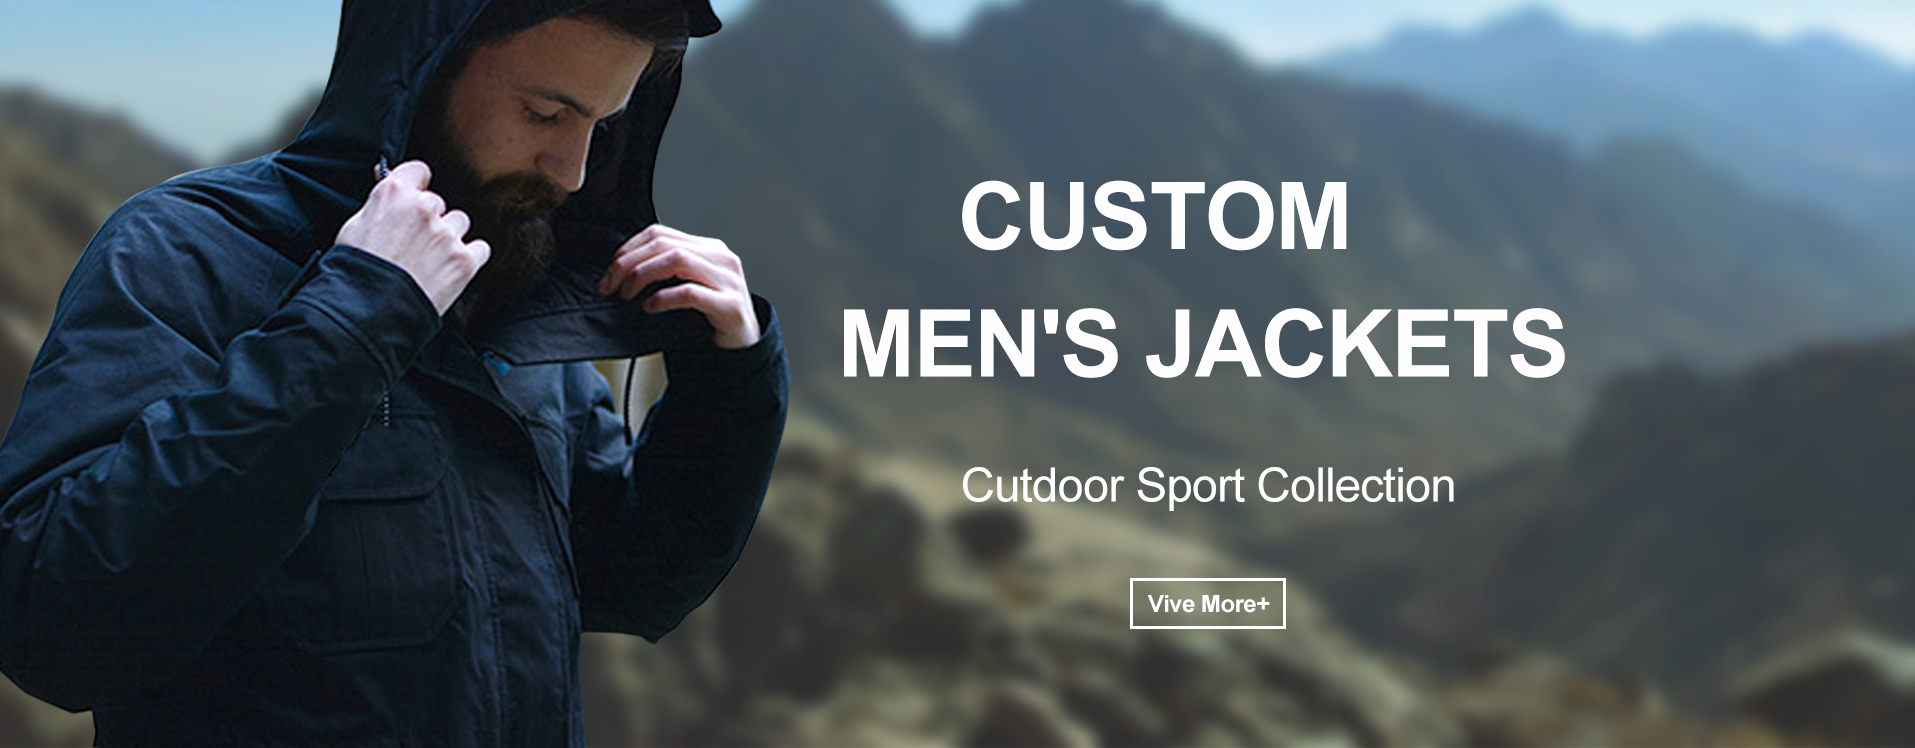 Outdoor Sport Collection